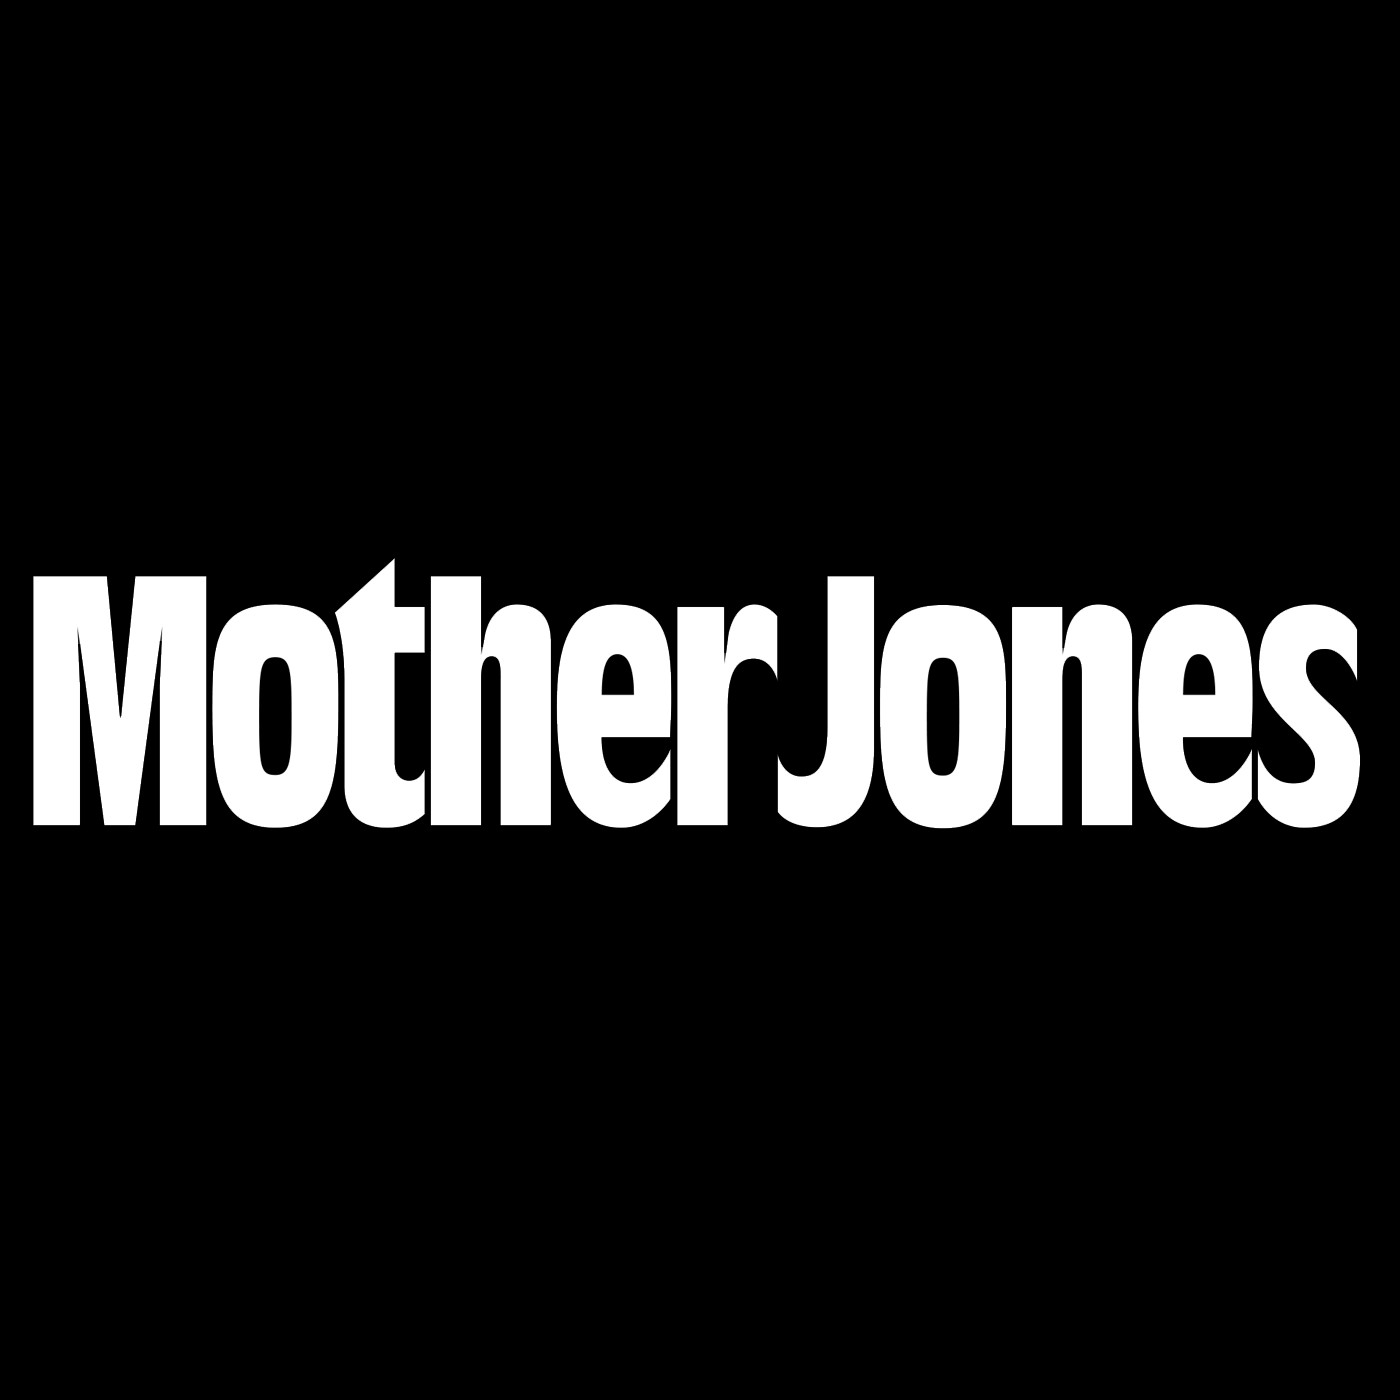 Mother Jones Smart, fearless journalism: A progressive American magazine that focuses on news, commentary, and investigative reporting on topics including politics, the environment, human rights, and culture.